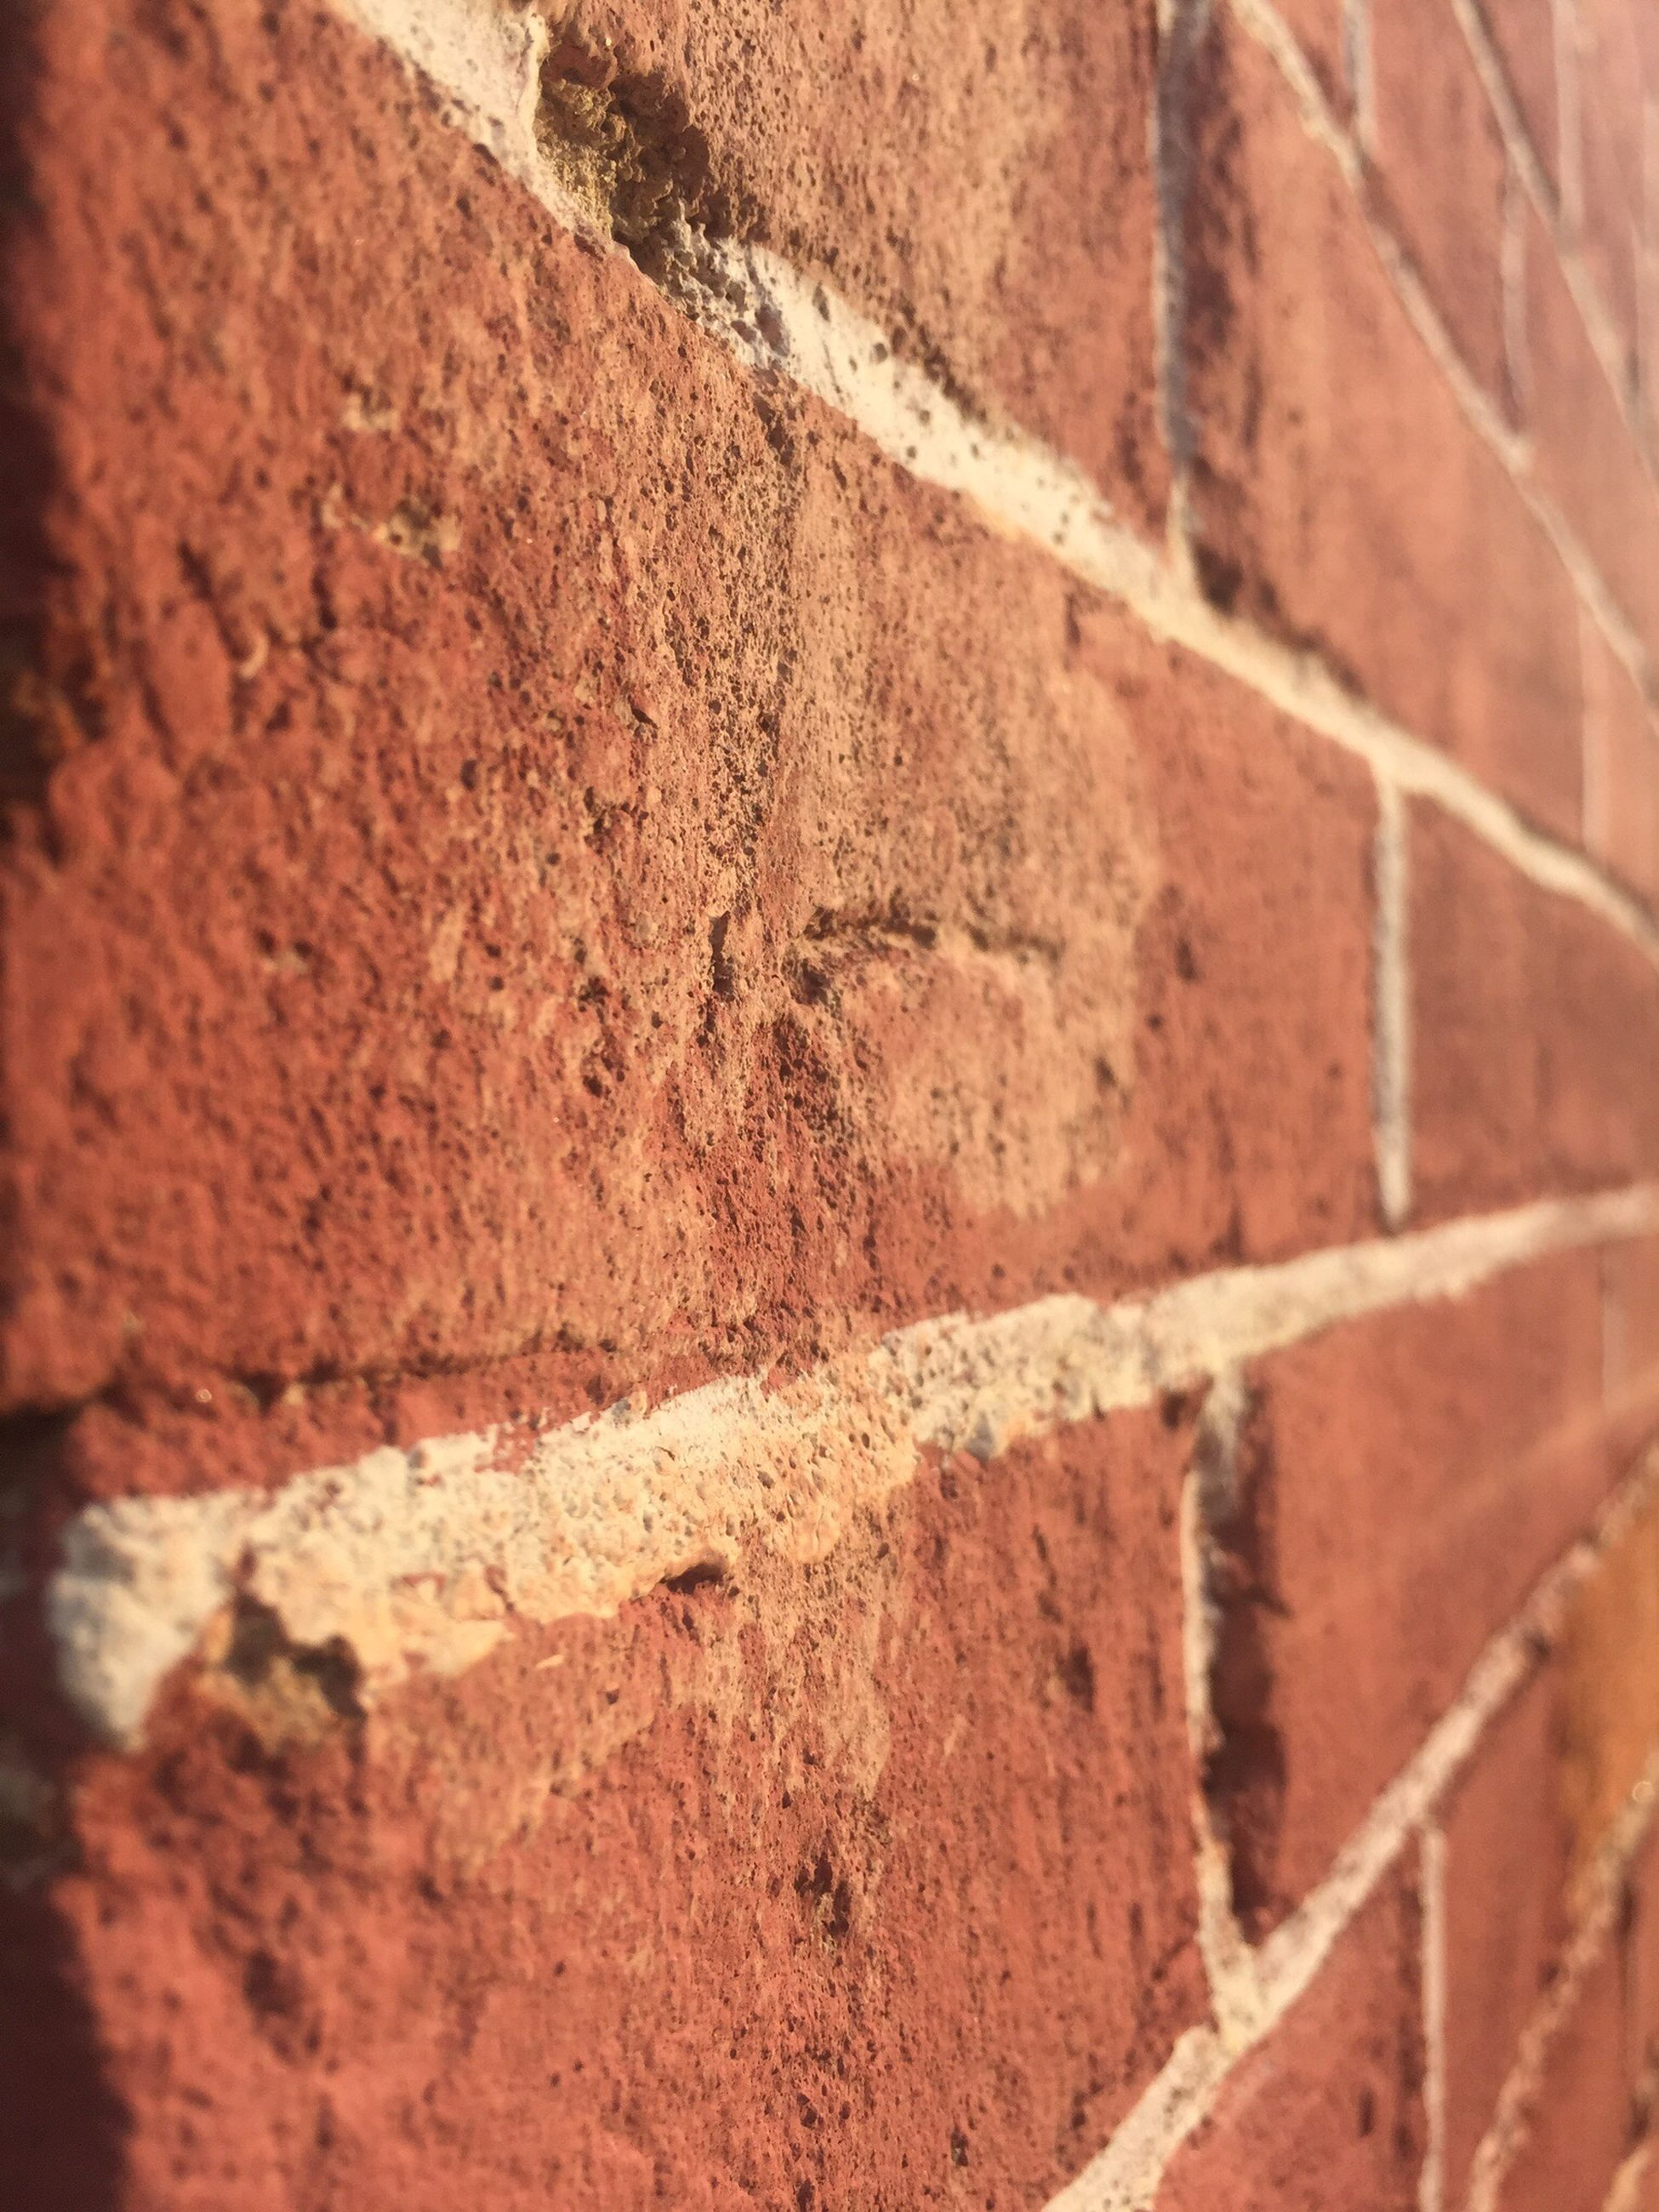 brick wall, architecture, built structure, wall - building feature, full frame, building exterior, textured, backgrounds, wall, pattern, brick, stone wall, close-up, no people, window, day, weathered, old, outdoors, sunlight